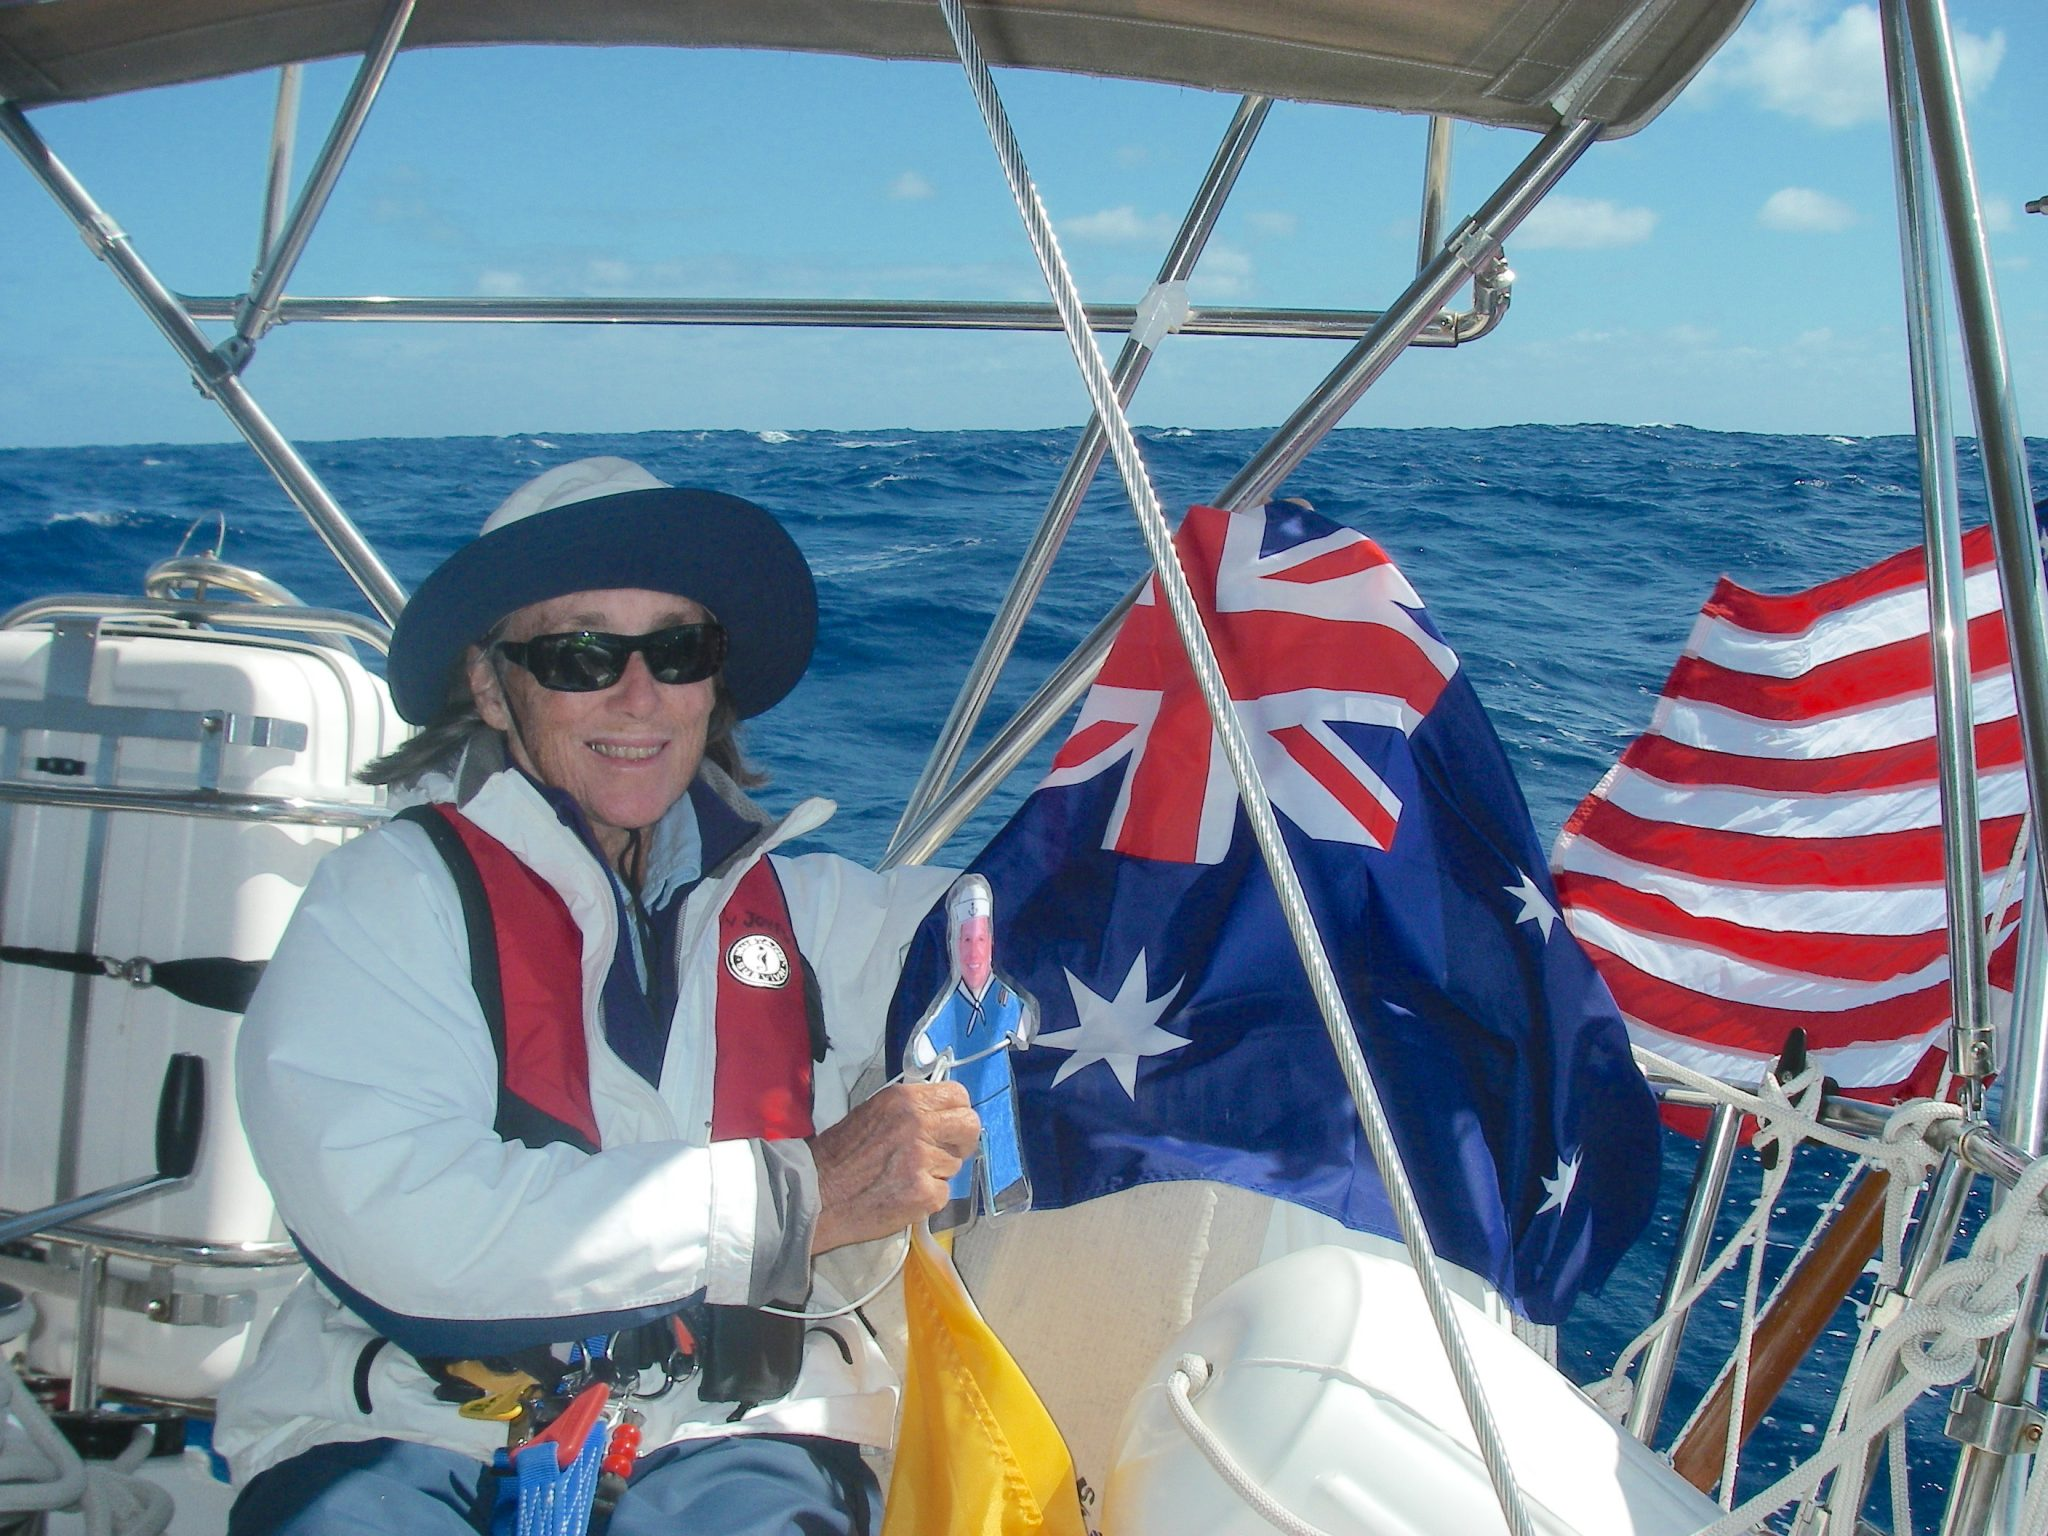 48-flat-mr-davis-and-anne-prepared-to-hoist-the-australian-courtesy-and-yellow-quarantine-flags-when-joyful-sailed-into-australian-national-waters